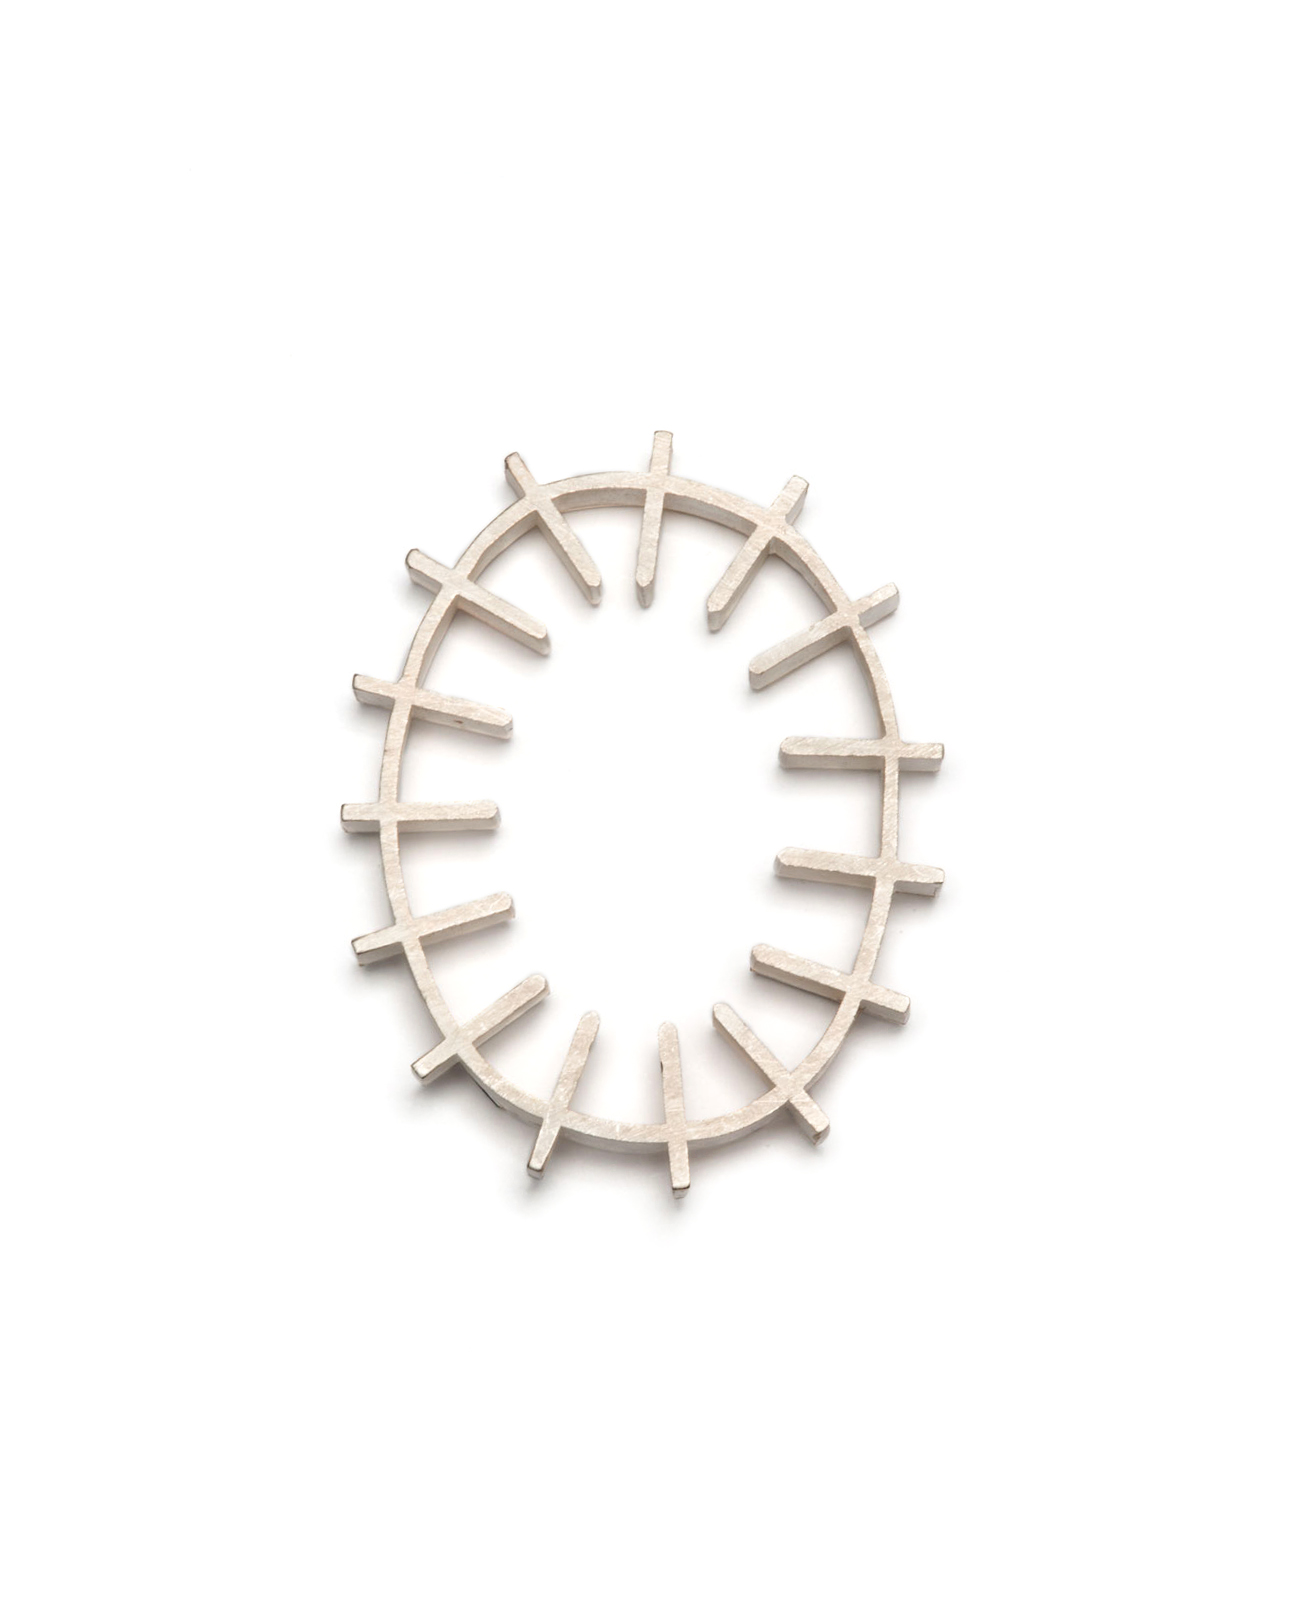 Winfried Krüger, untitled, 2003, brooch; silver, 85 x 65 mm, €875